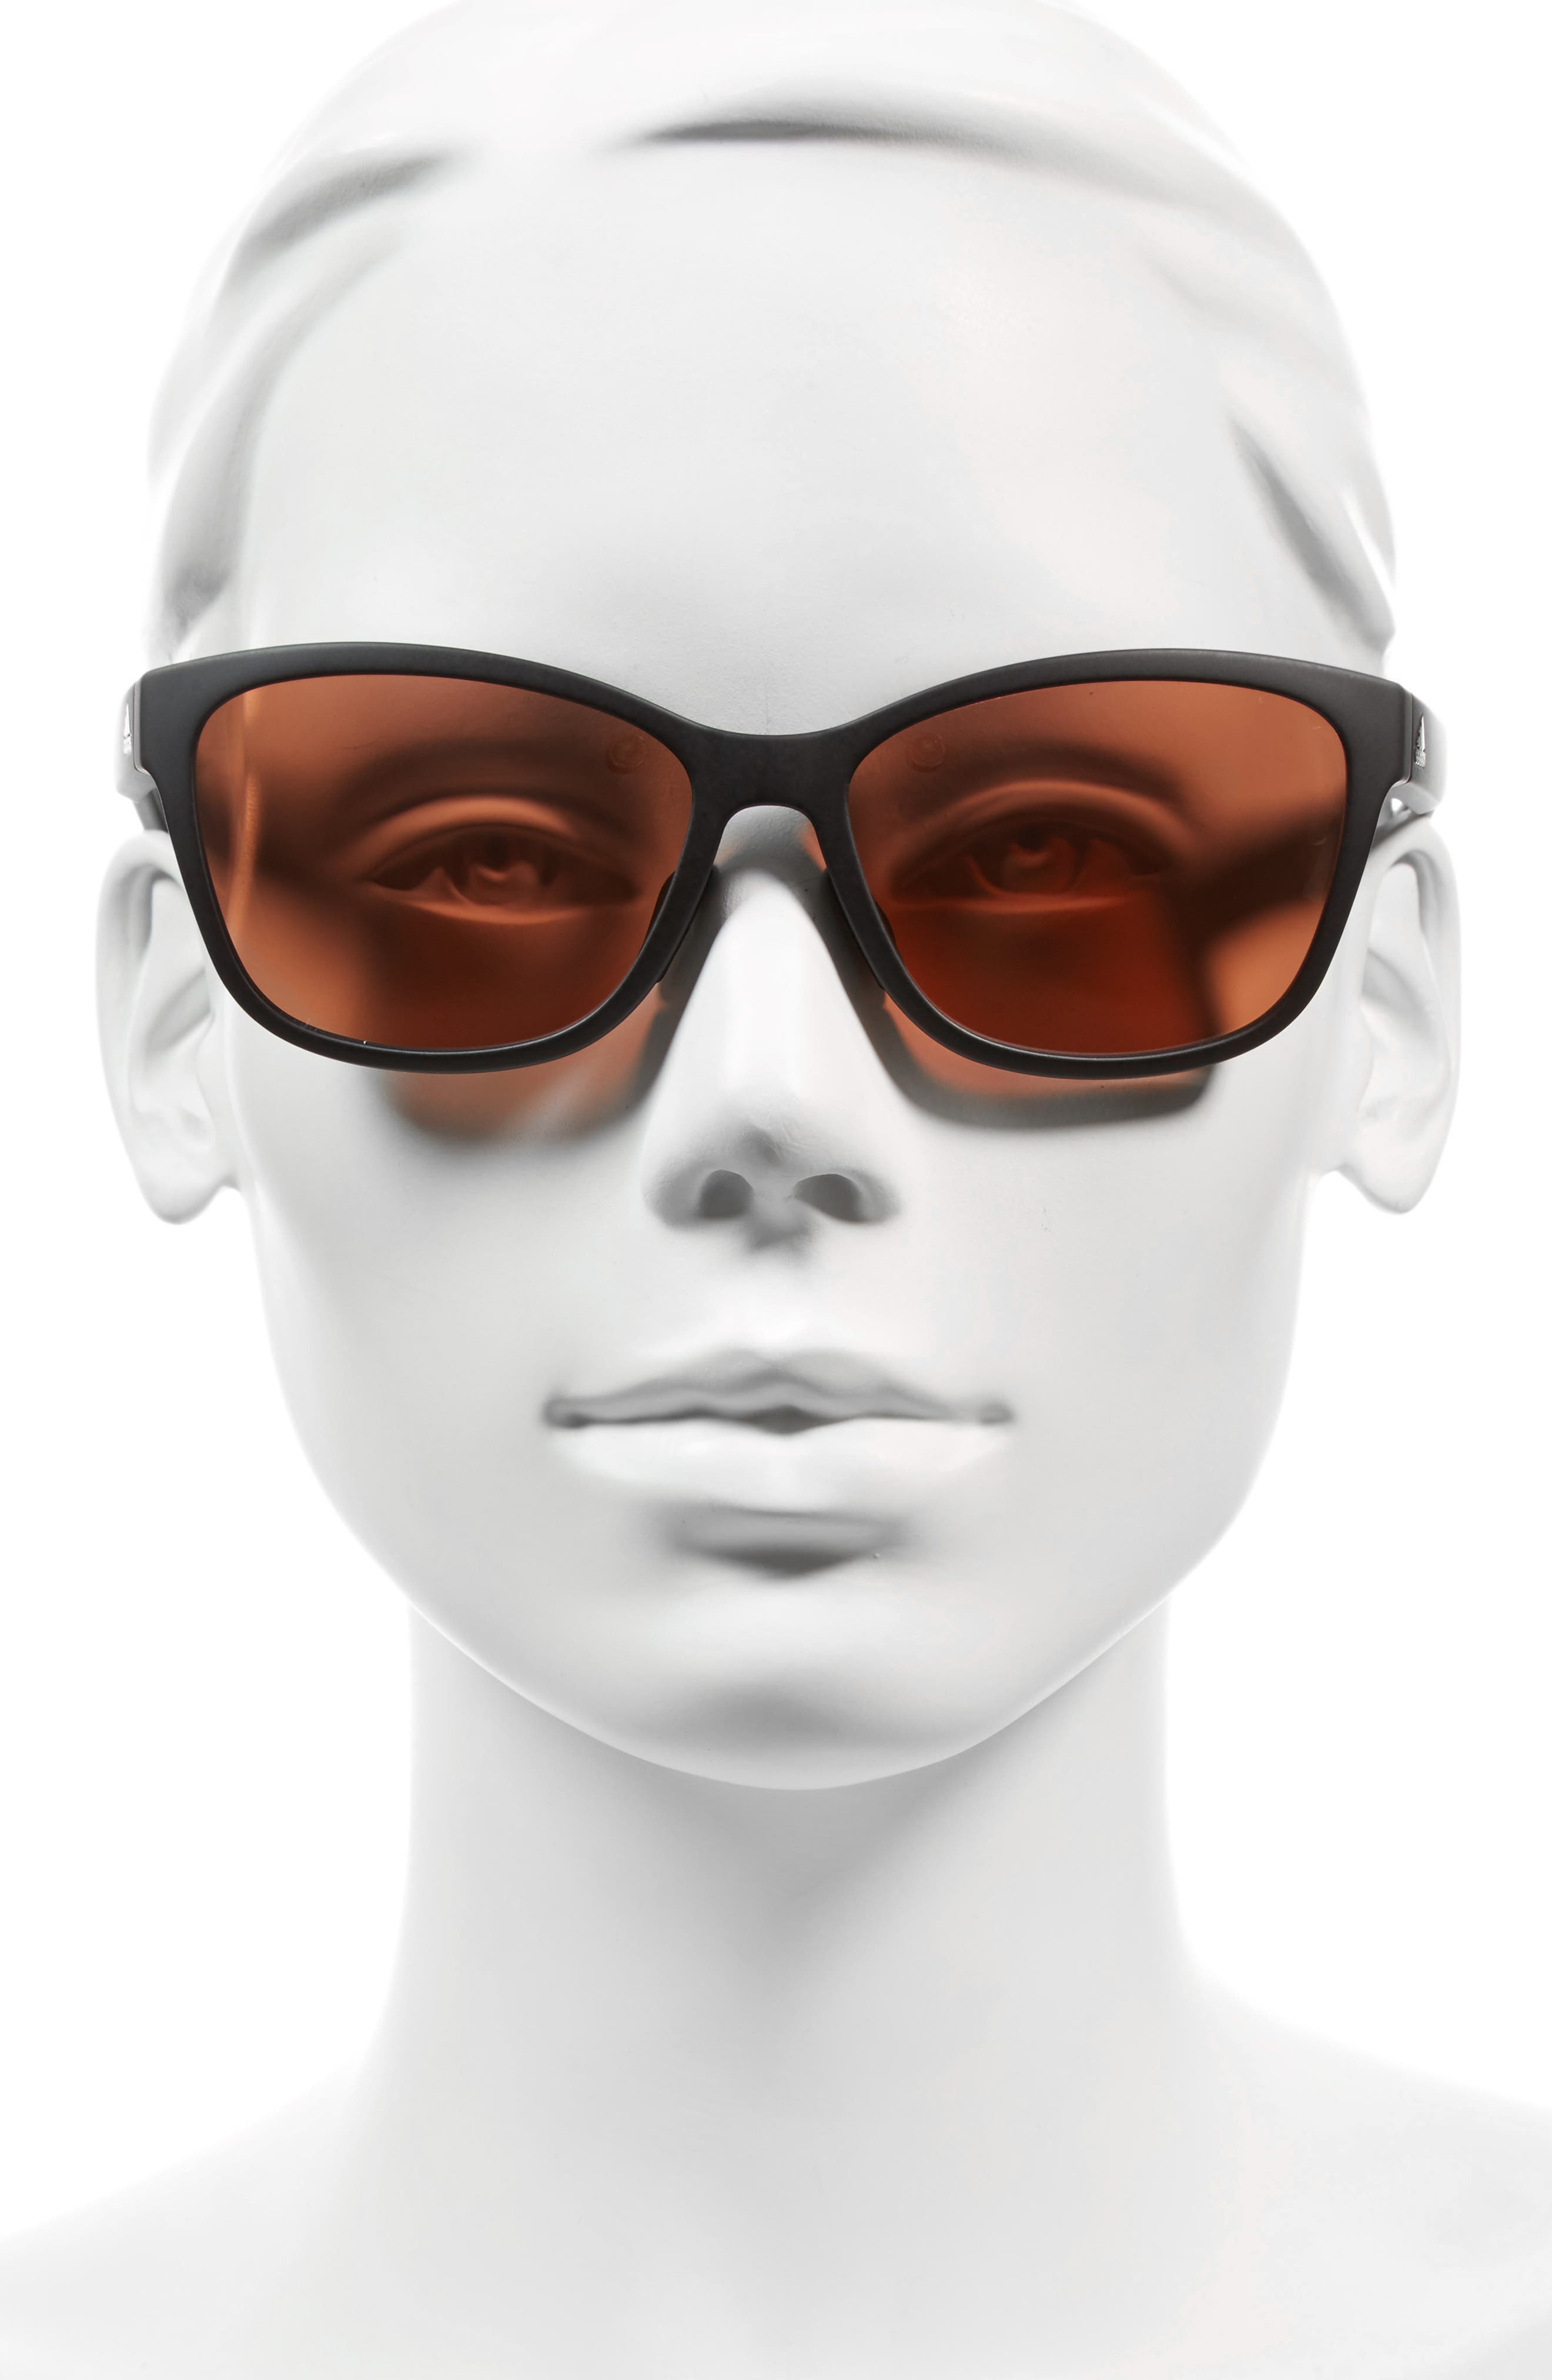 Excalate 58mm Mirrored Sunglasses,                             Alternate thumbnail 2, color,                             BLACK MATTE/ TAUPE